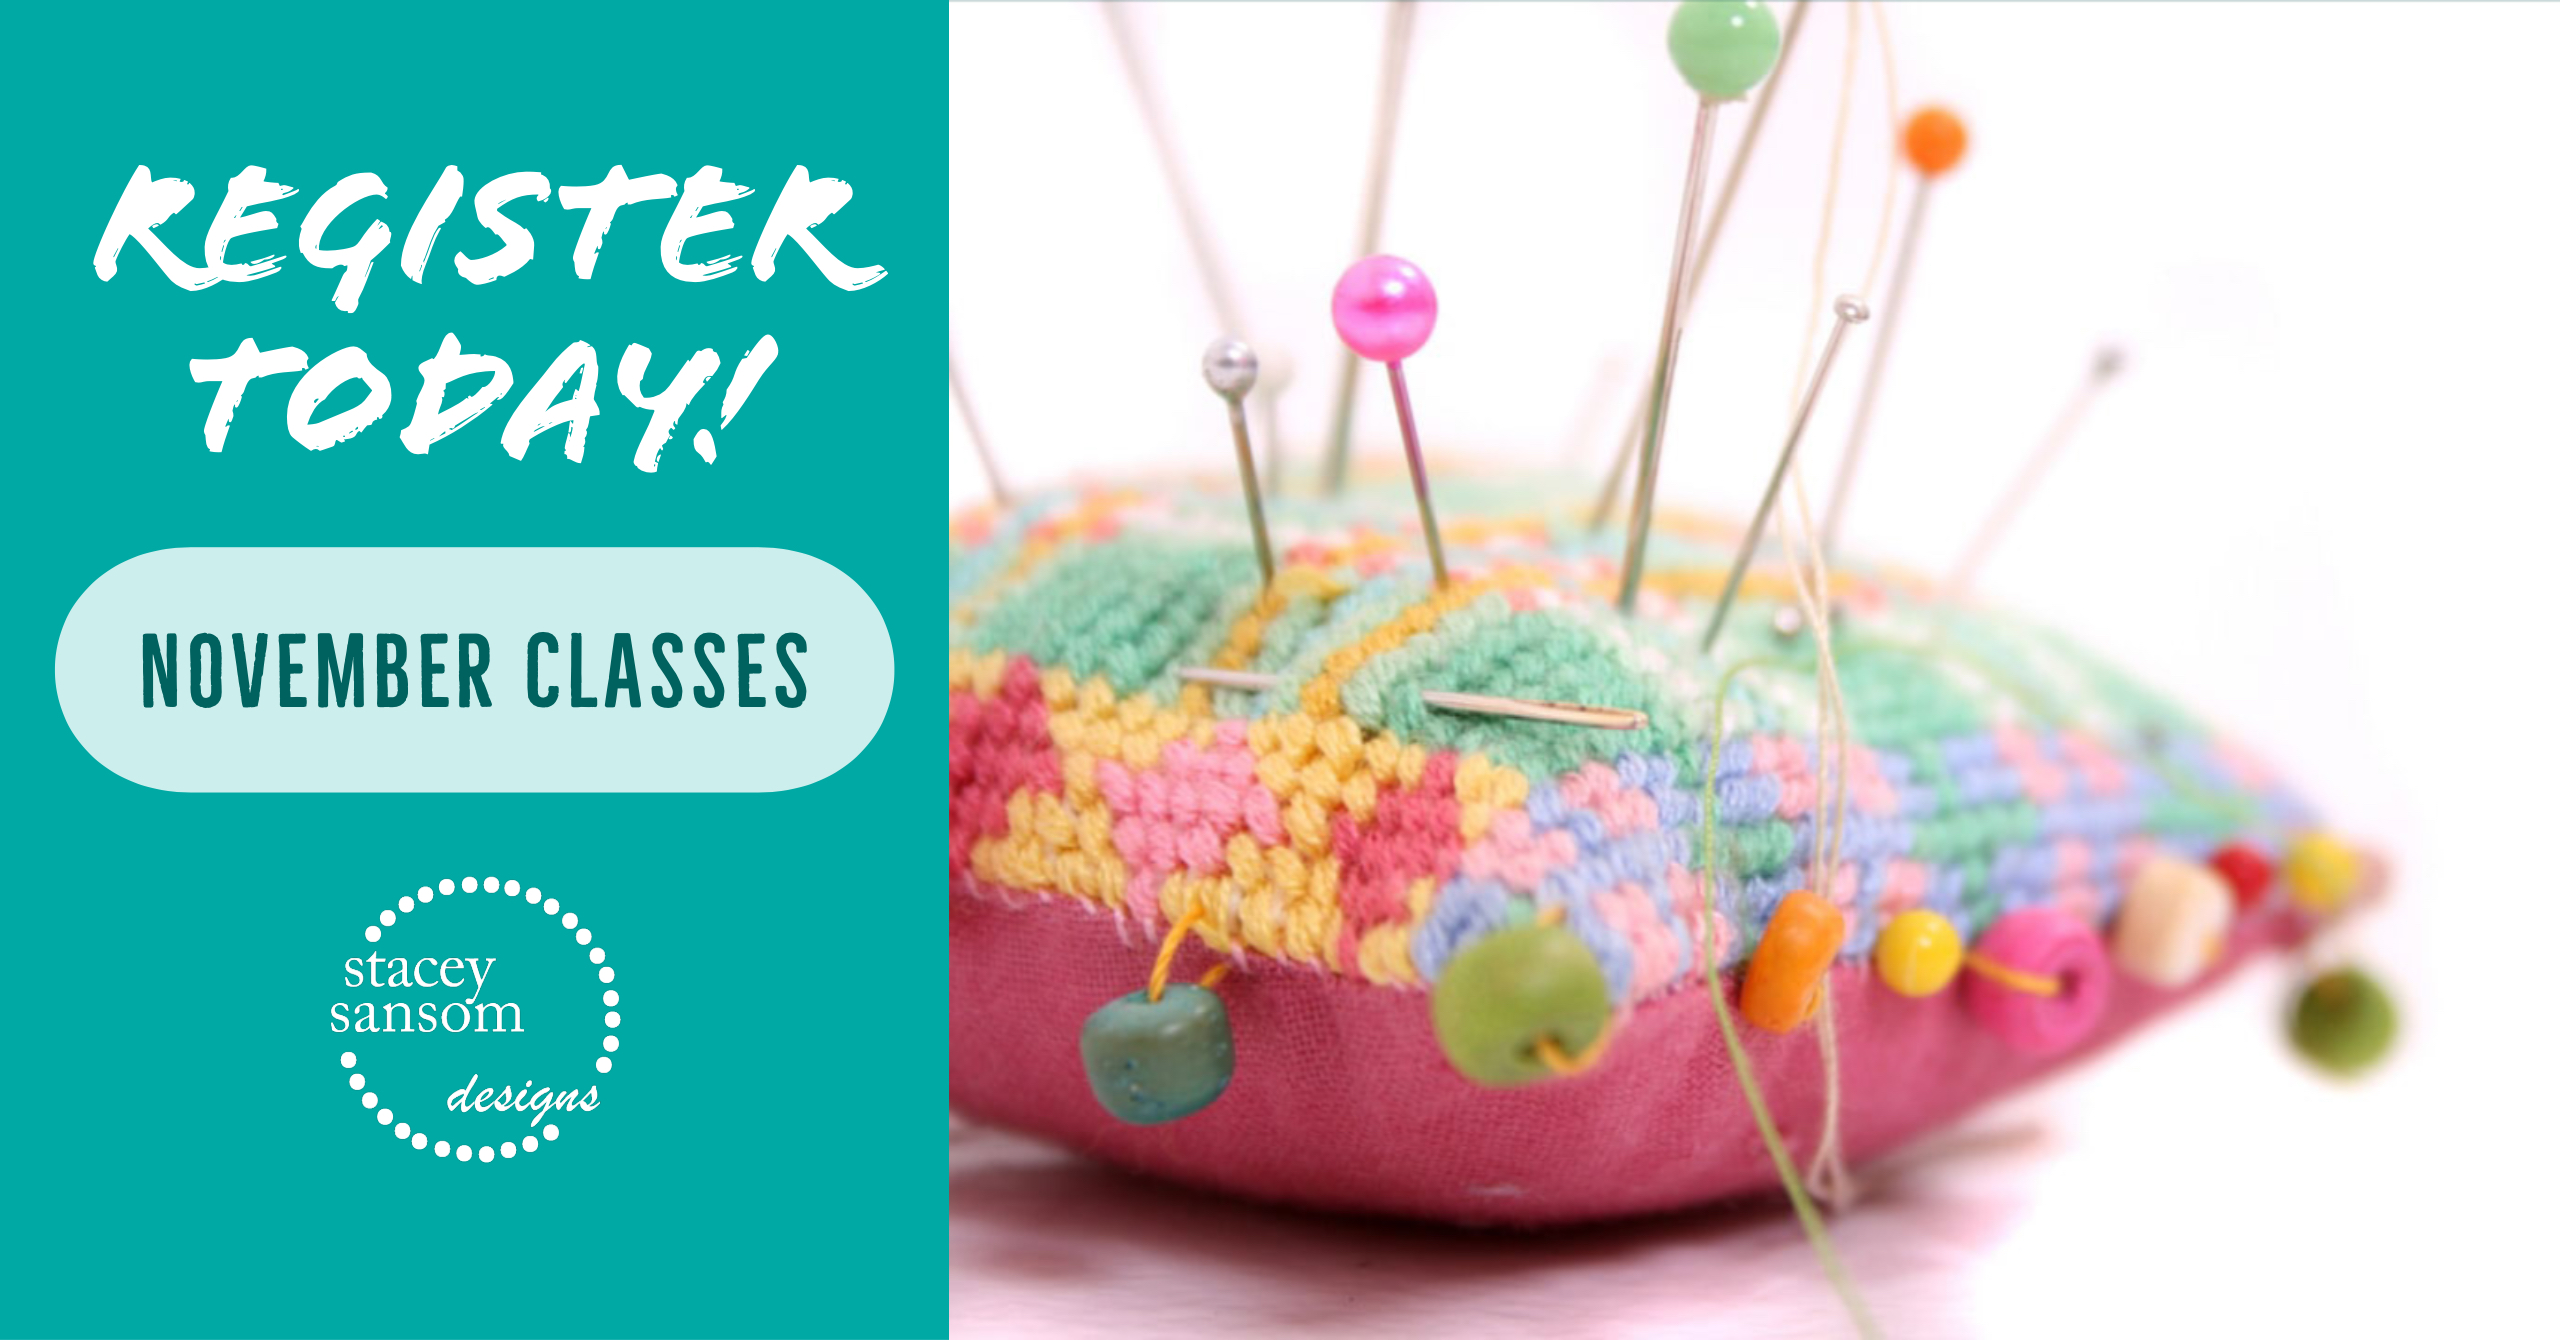 Register today for November sewing classes at Stacey Sansom Designs